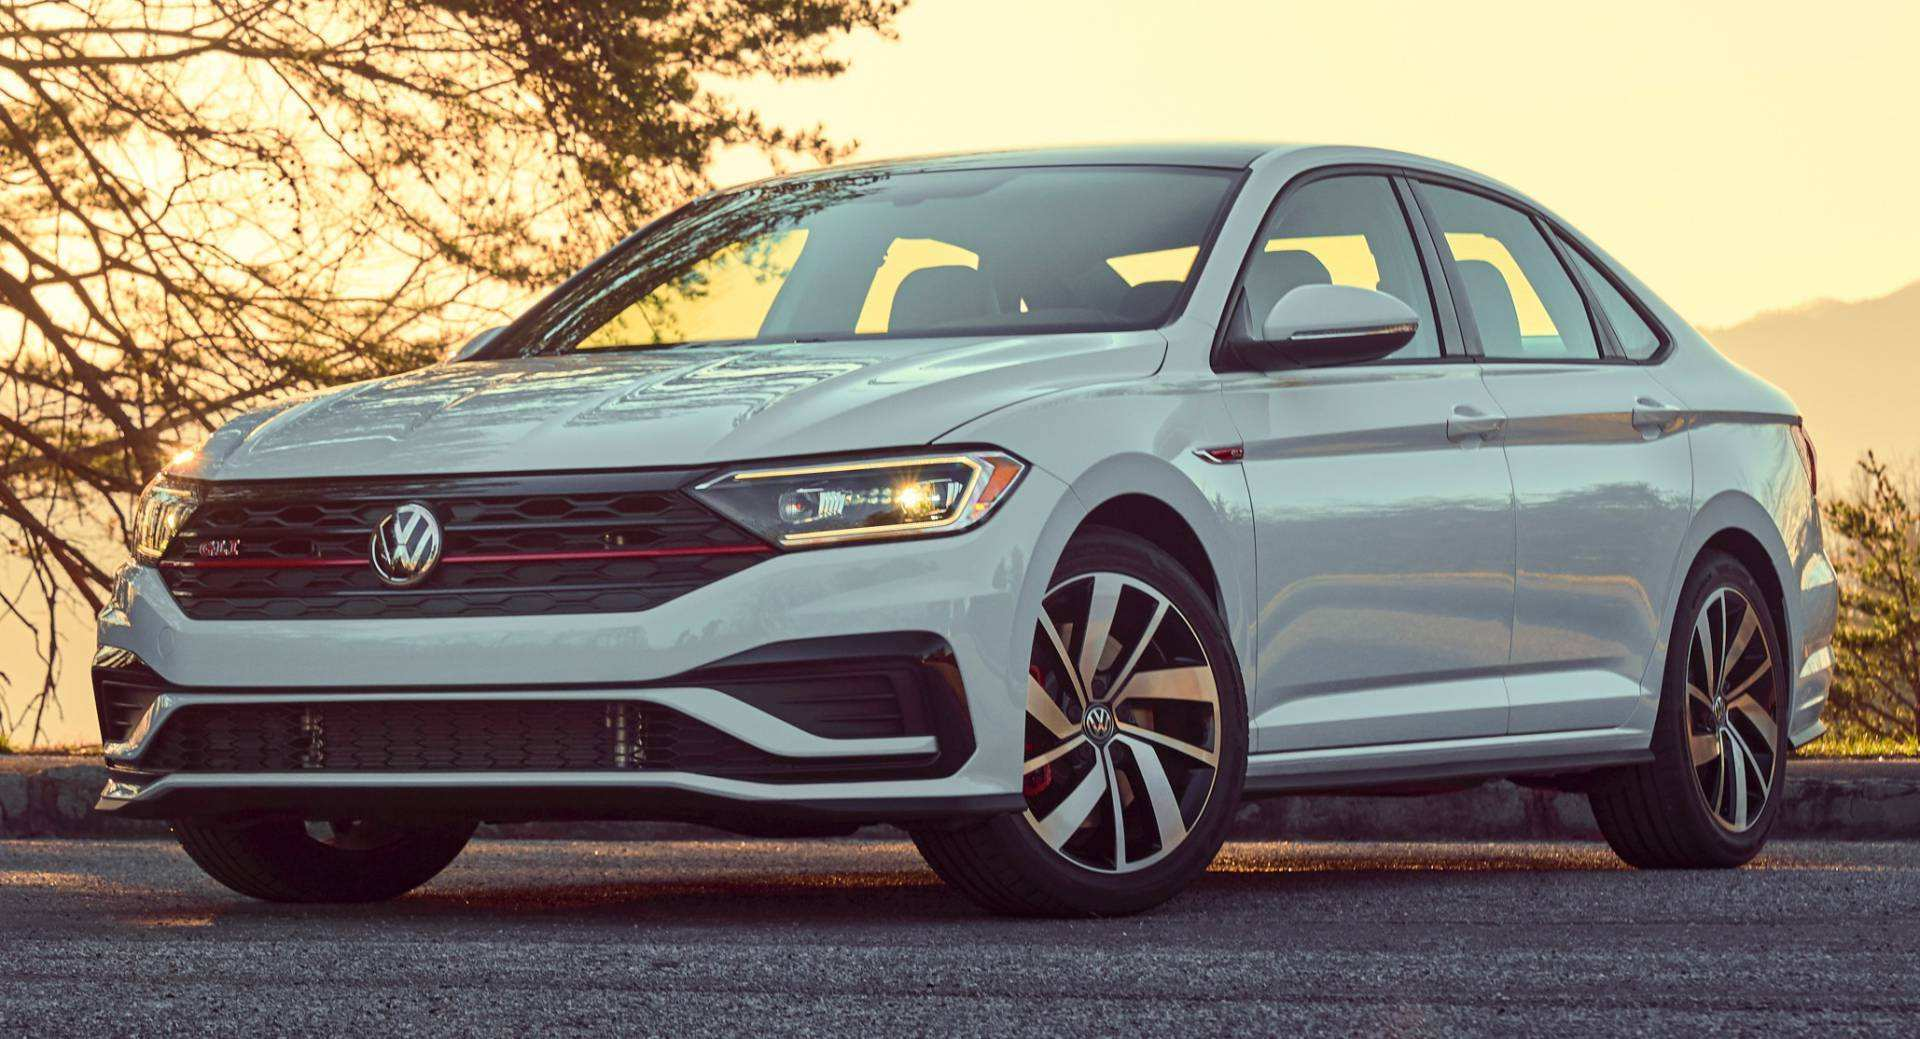 65 The 2019 Vw Jetta Gli Price